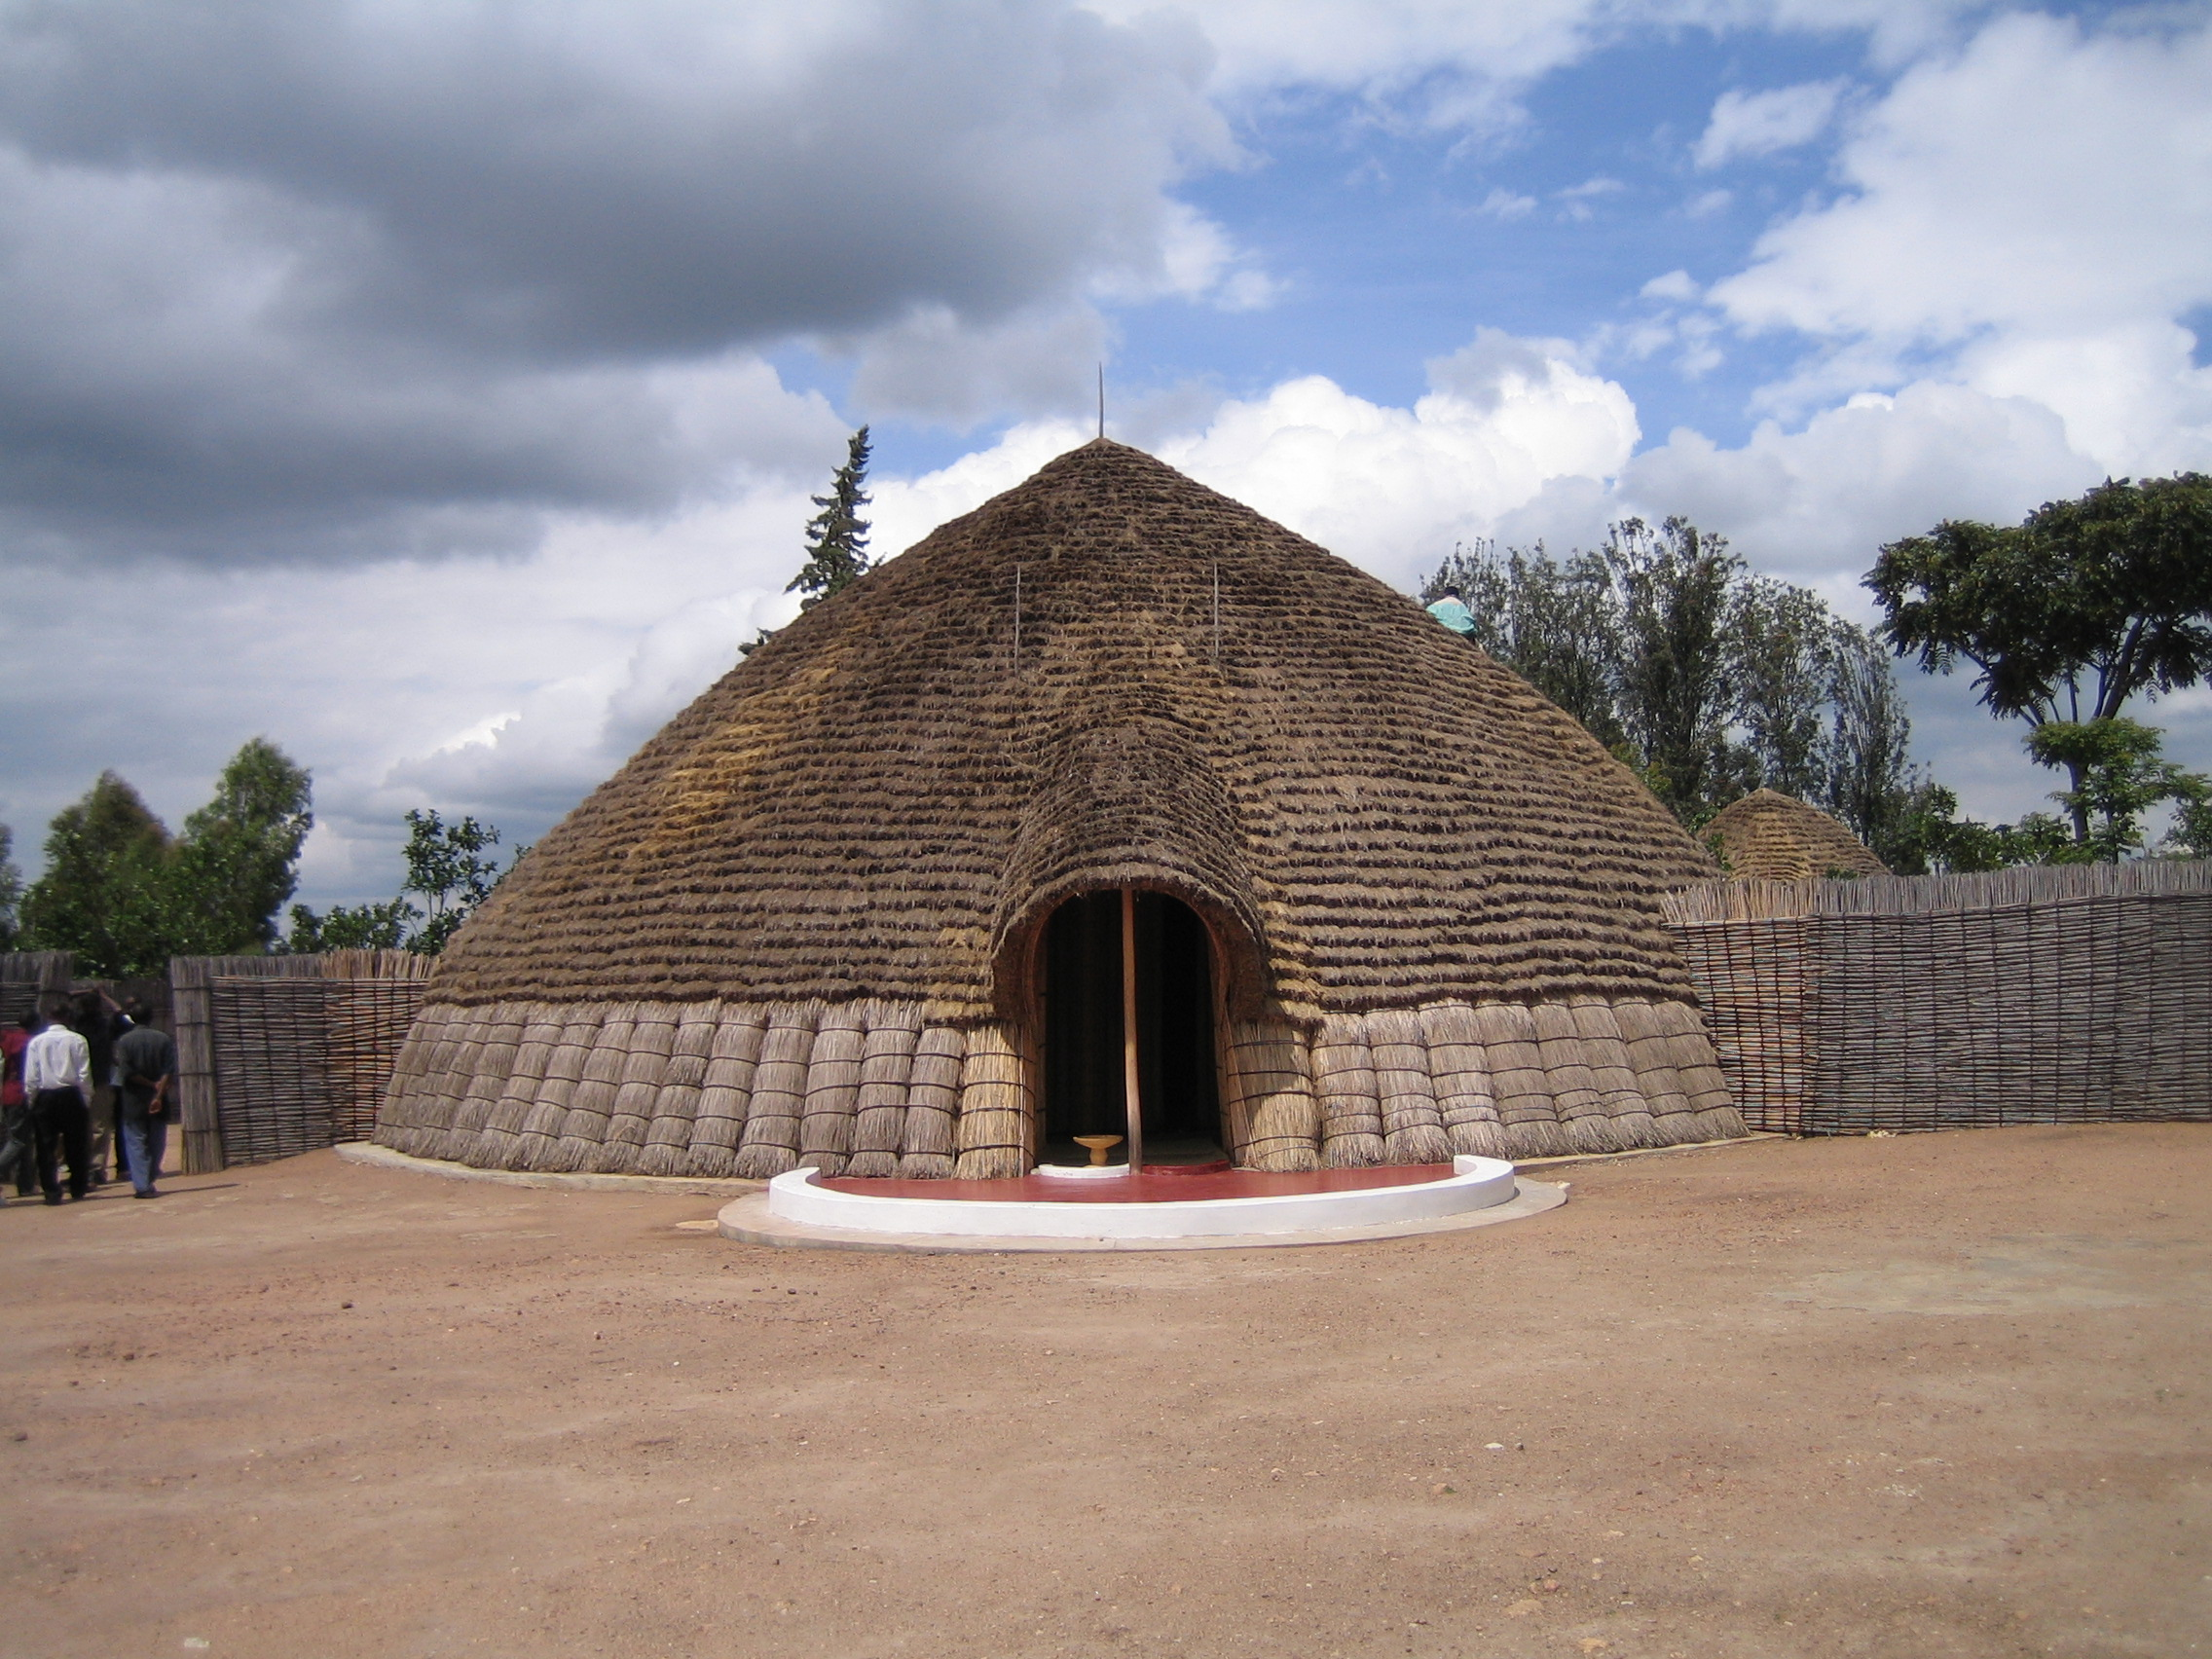 rwanda photograph of king s palace in nyanza rwanda depicting main entrance front and conical roof